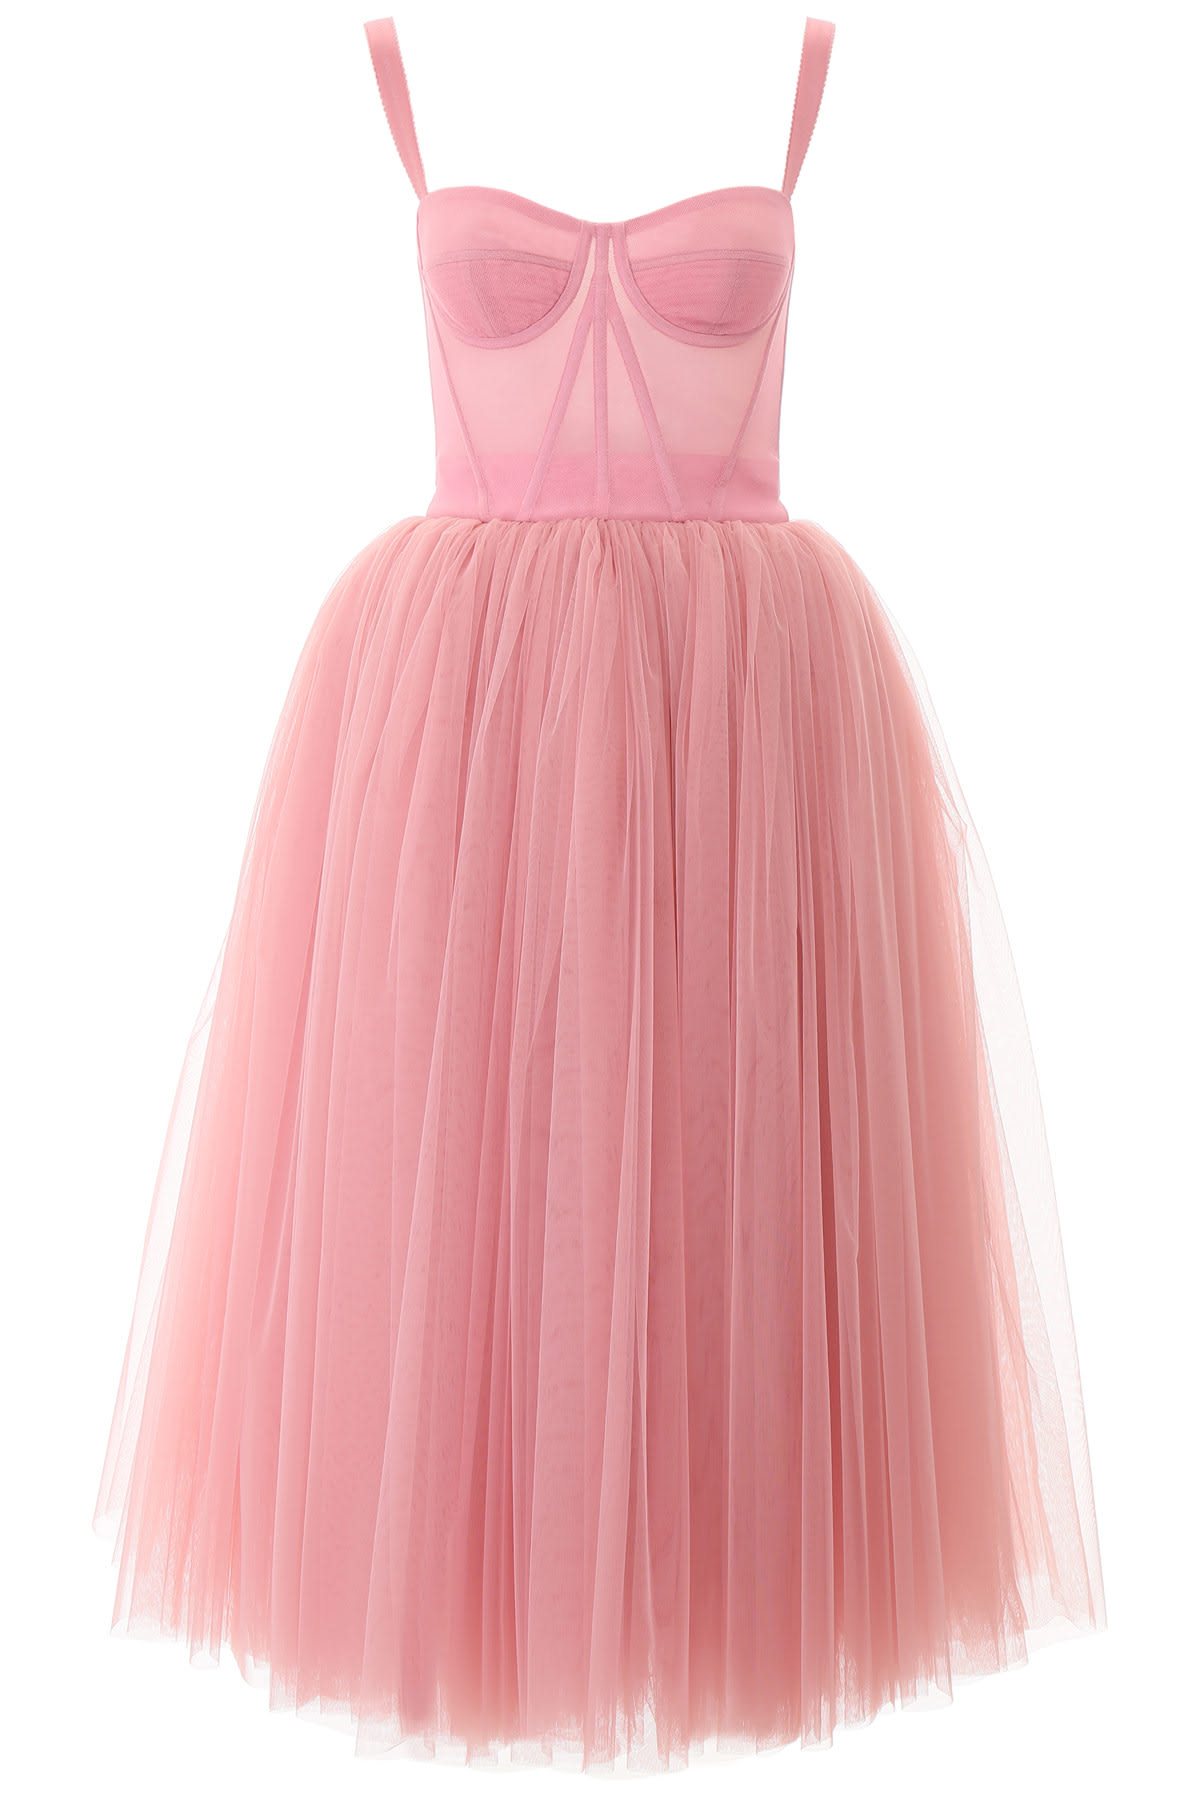 Buy Dolce & Gabbana Tulle Ballerina Dress online, shop Dolce & Gabbana with free shipping